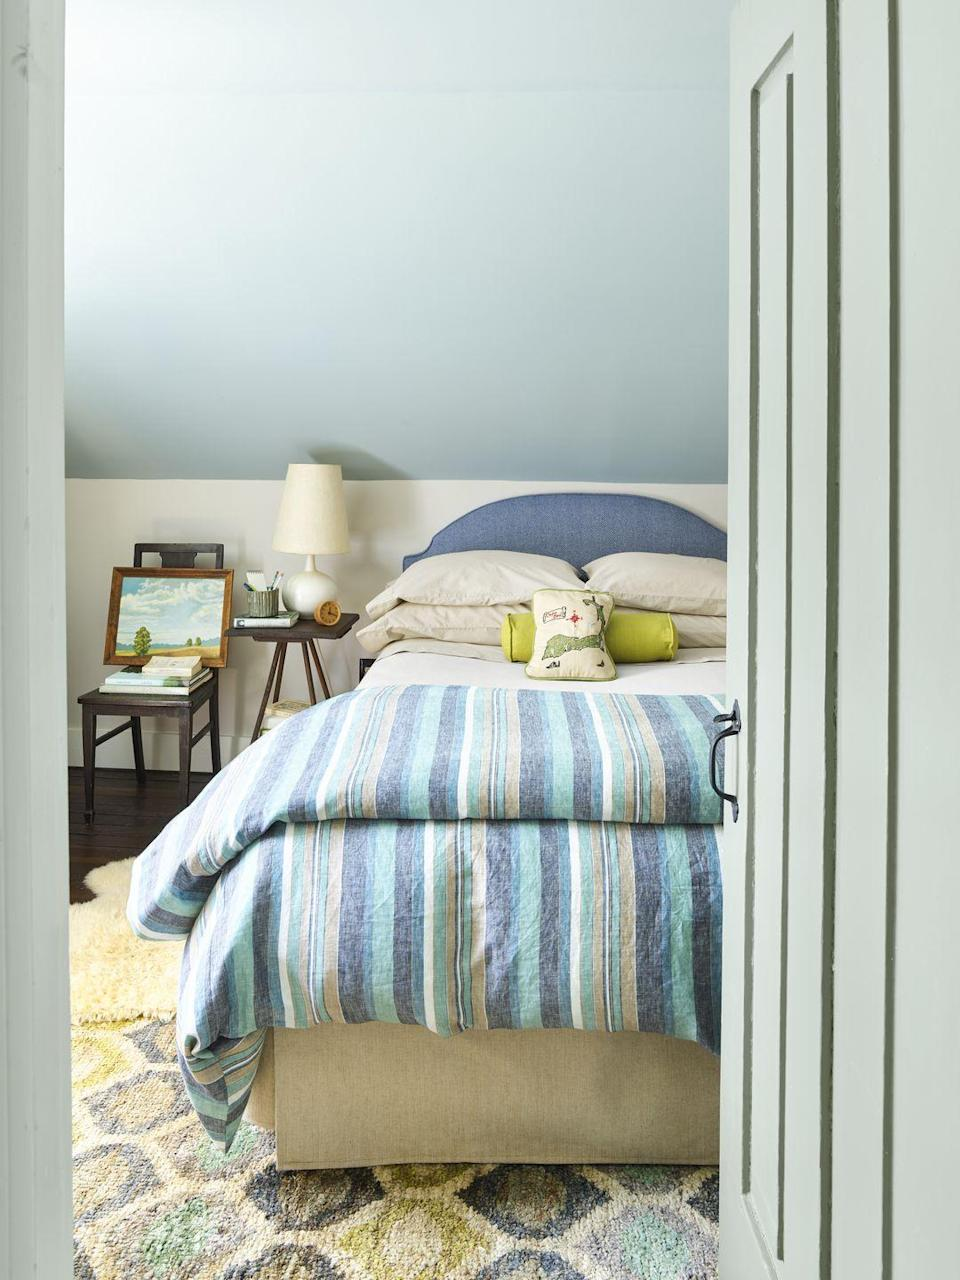 """<p>To visually open up his oddly configured bedroom, homeowner—and <em>Country Living</em> photo stylist—Matthew Gleason looked for colors right outside his window, starting with the blue sky. To emphasize its slope and height, he used the pretty soft blue on the ceiling and then chose a contrasting white for the short walls. He continued the blue thread with an upholstered headboard and striped linens. Keeping everything in the same blue family but of varying hues keeps it more active and fun. </p><p><strong>Get the Look: </strong><br>Ceiling Paint Color: <a href=""""https://store.benjaminmoore.com/storefront/index.ep"""" rel=""""nofollow noopener"""" target=""""_blank"""" data-ylk=""""slk:Fantasy Blue by Benjamin Moore"""" class=""""link rapid-noclick-resp"""">Fantasy Blue by Benjamin Moore </a></p>"""